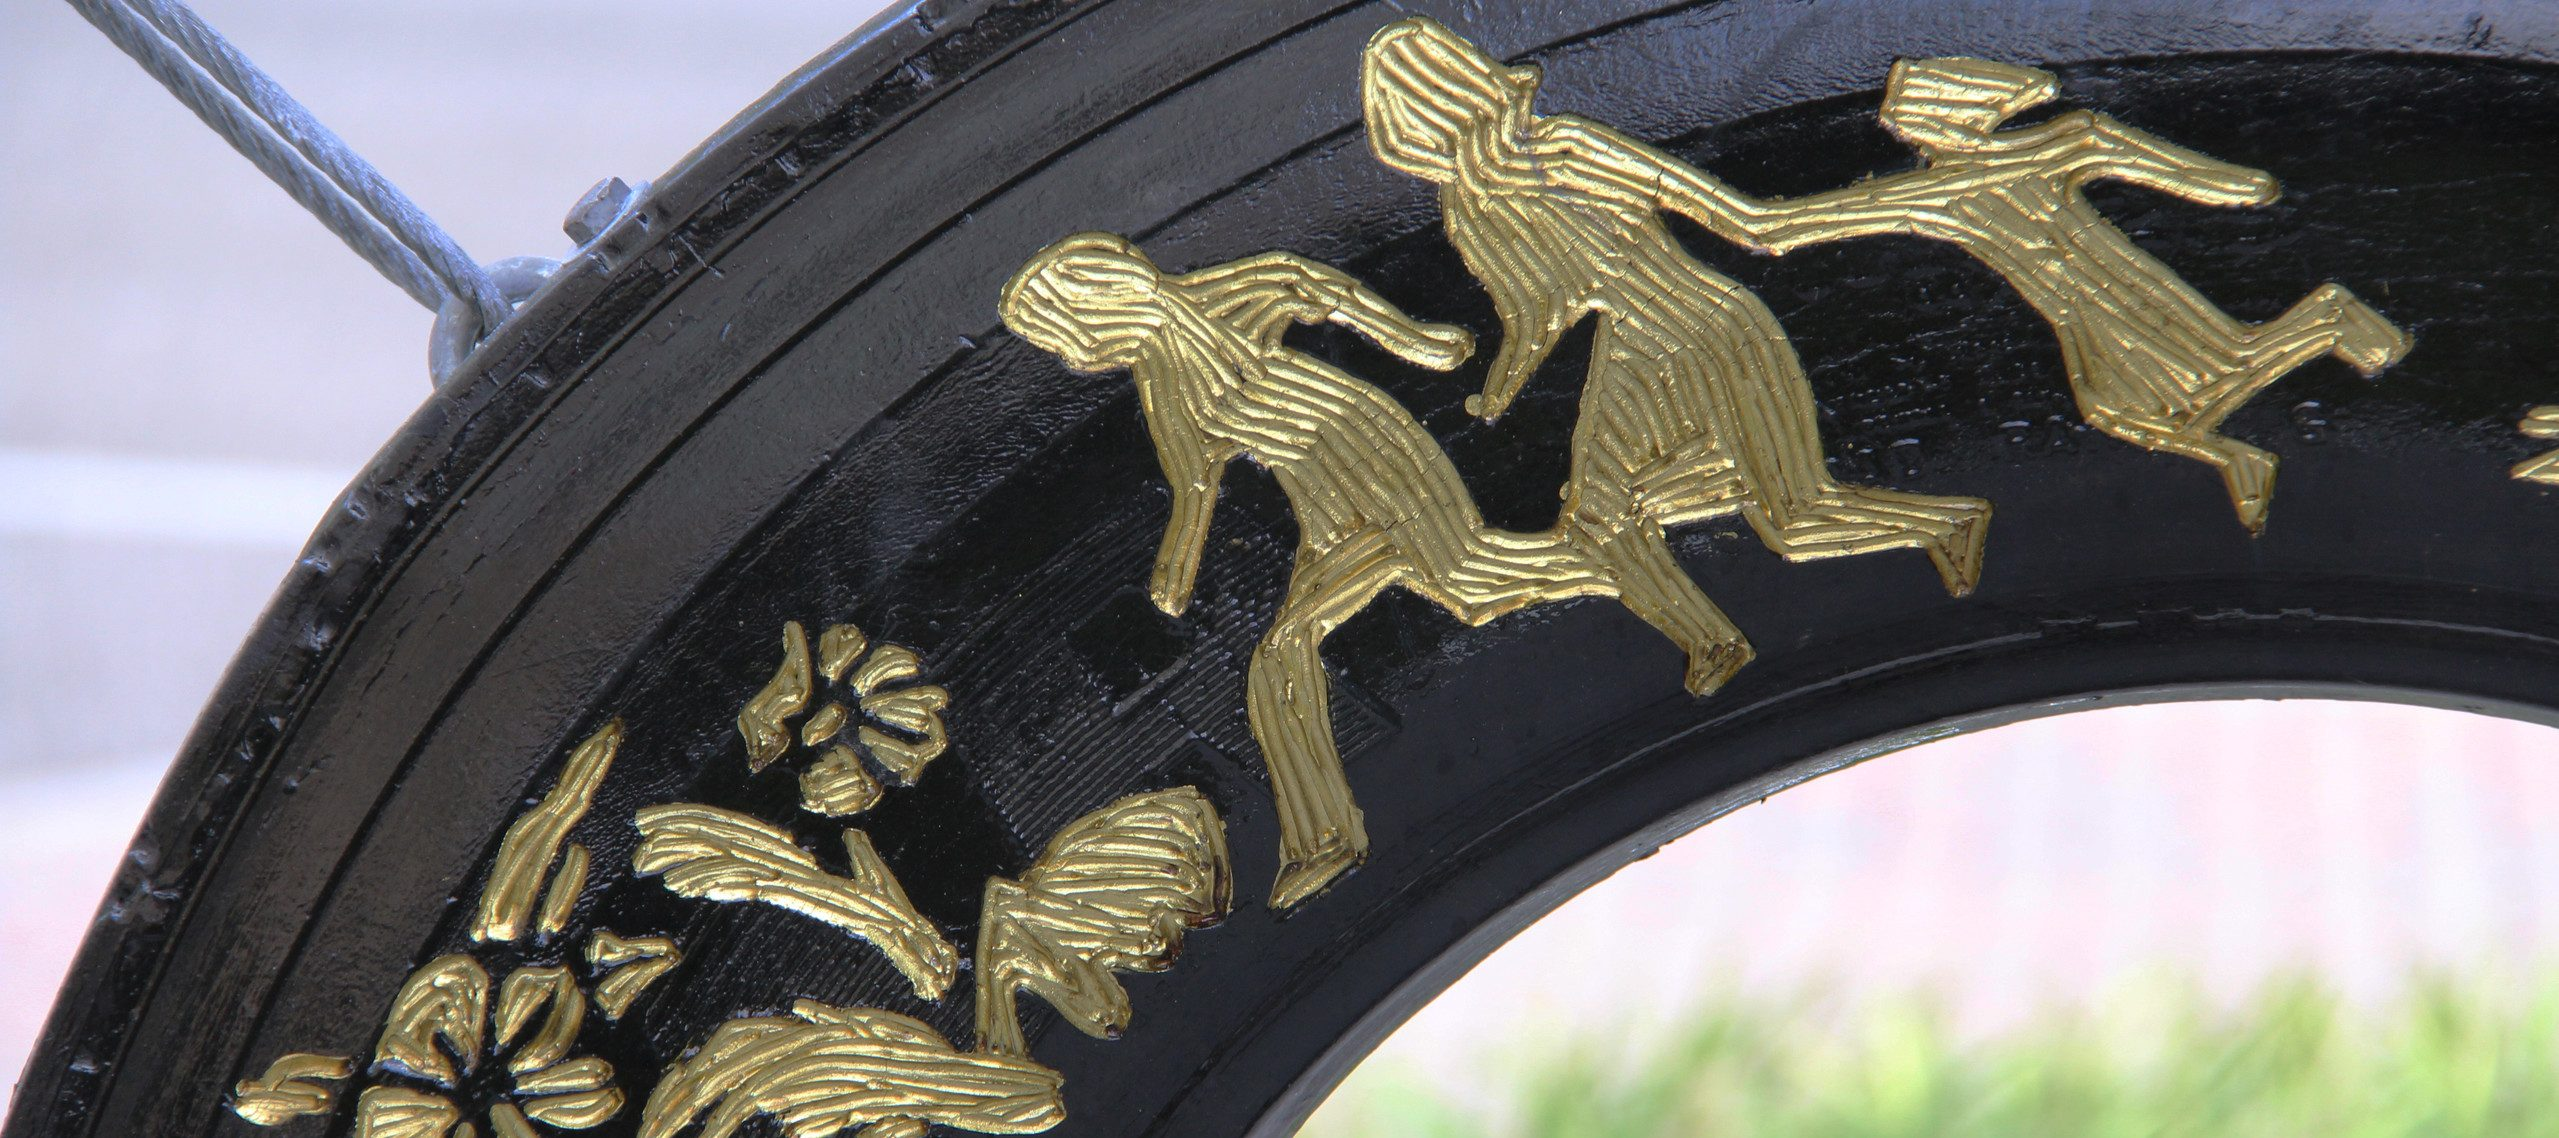 Betsabeé Romero, <i>Huellas y cicatricez (Traces and scars)</i> (detail), 2018; Four tires with engraving and gold leaf and steel support, approx. 192 1/2 x 86 5/8 x 9 3/4 in.; Courtesy Betsabeé Romero Art Studio; Photo by Mara Kurlandsky, NMWA